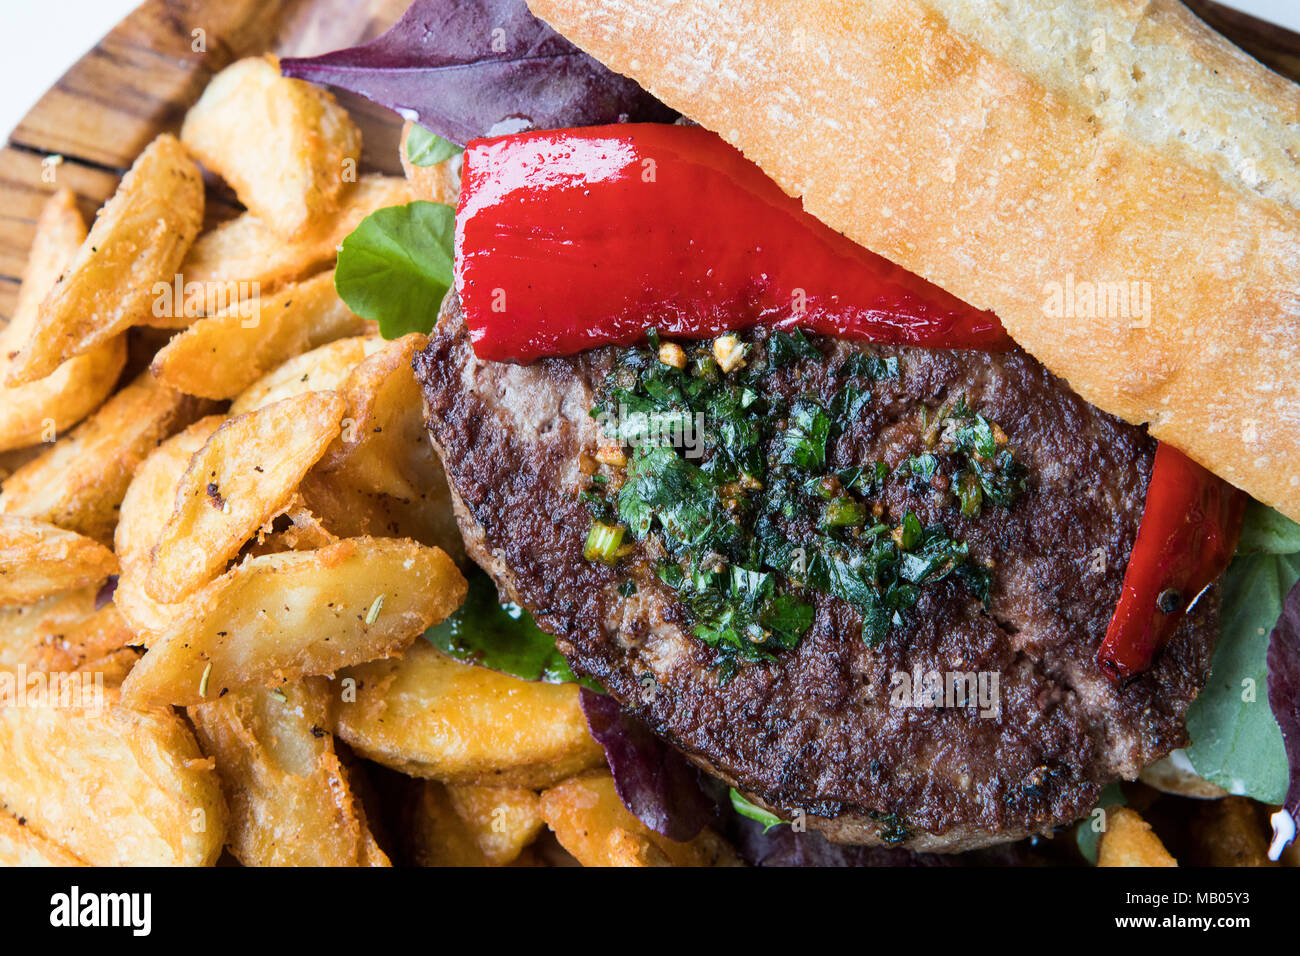 Posh burger and chips. - Stock Image